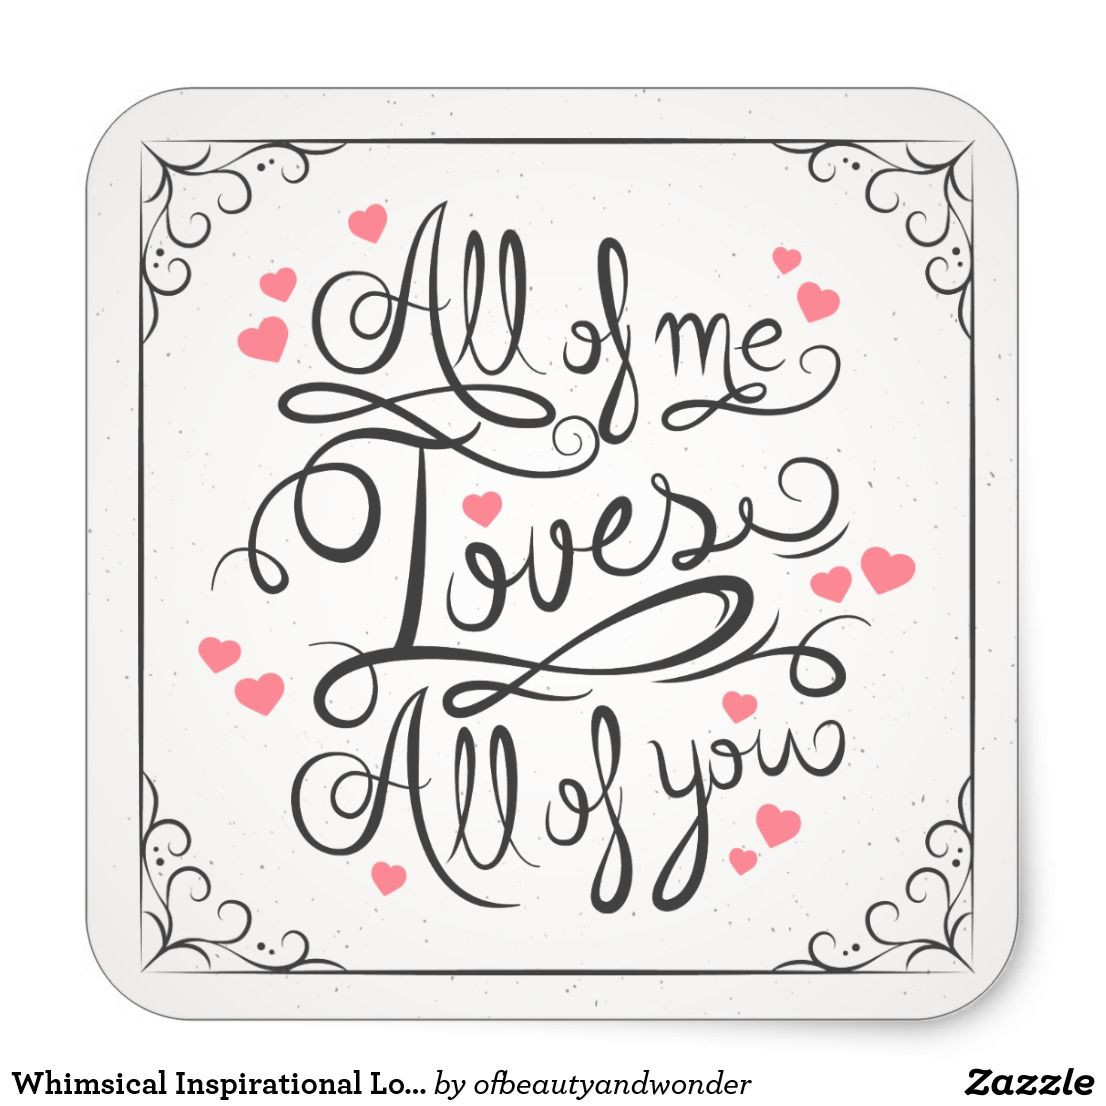 Whimsical Inspirational Love Quote Sticker Seal | Zazzle.com ...